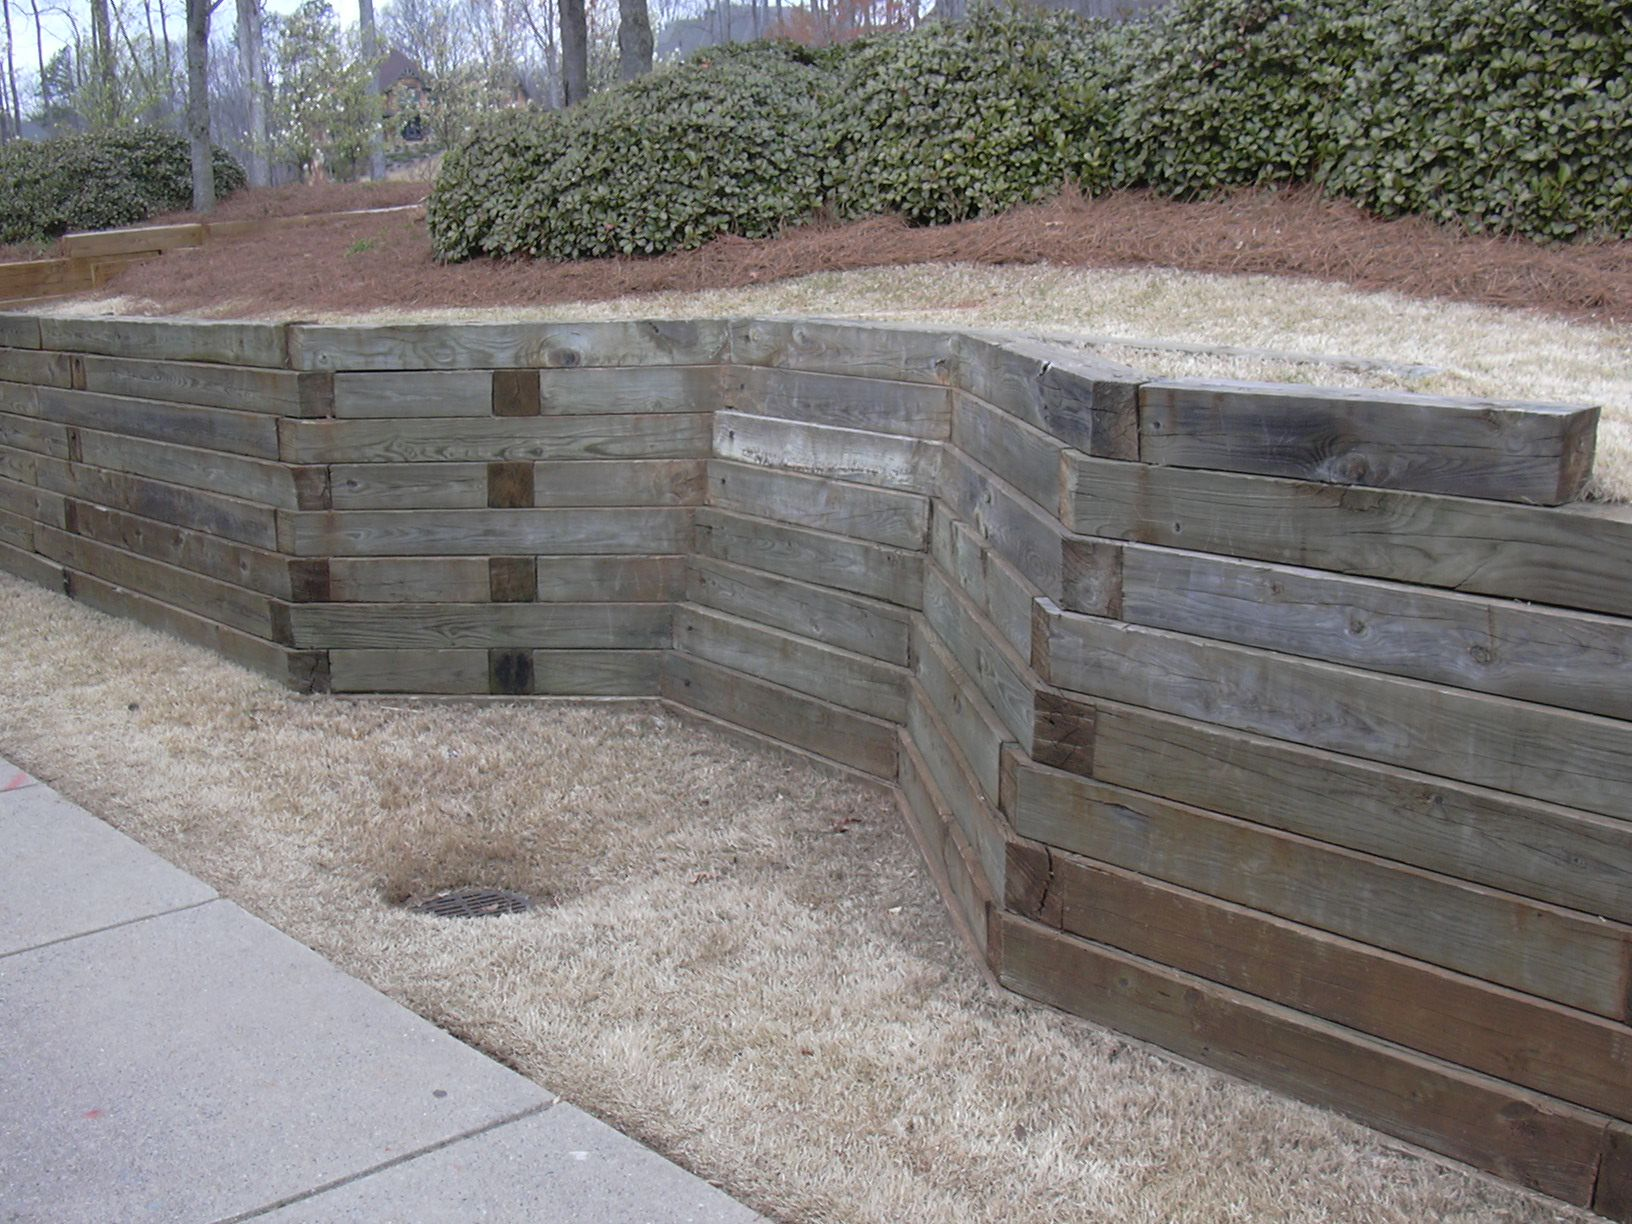 Garden Block Wall Ideas find this pin and more on liliput garden Backyard Retaining Wall Ideas Retaining Wall Ideas Agape Retaining Walls Inc Built These Retaining Walls In